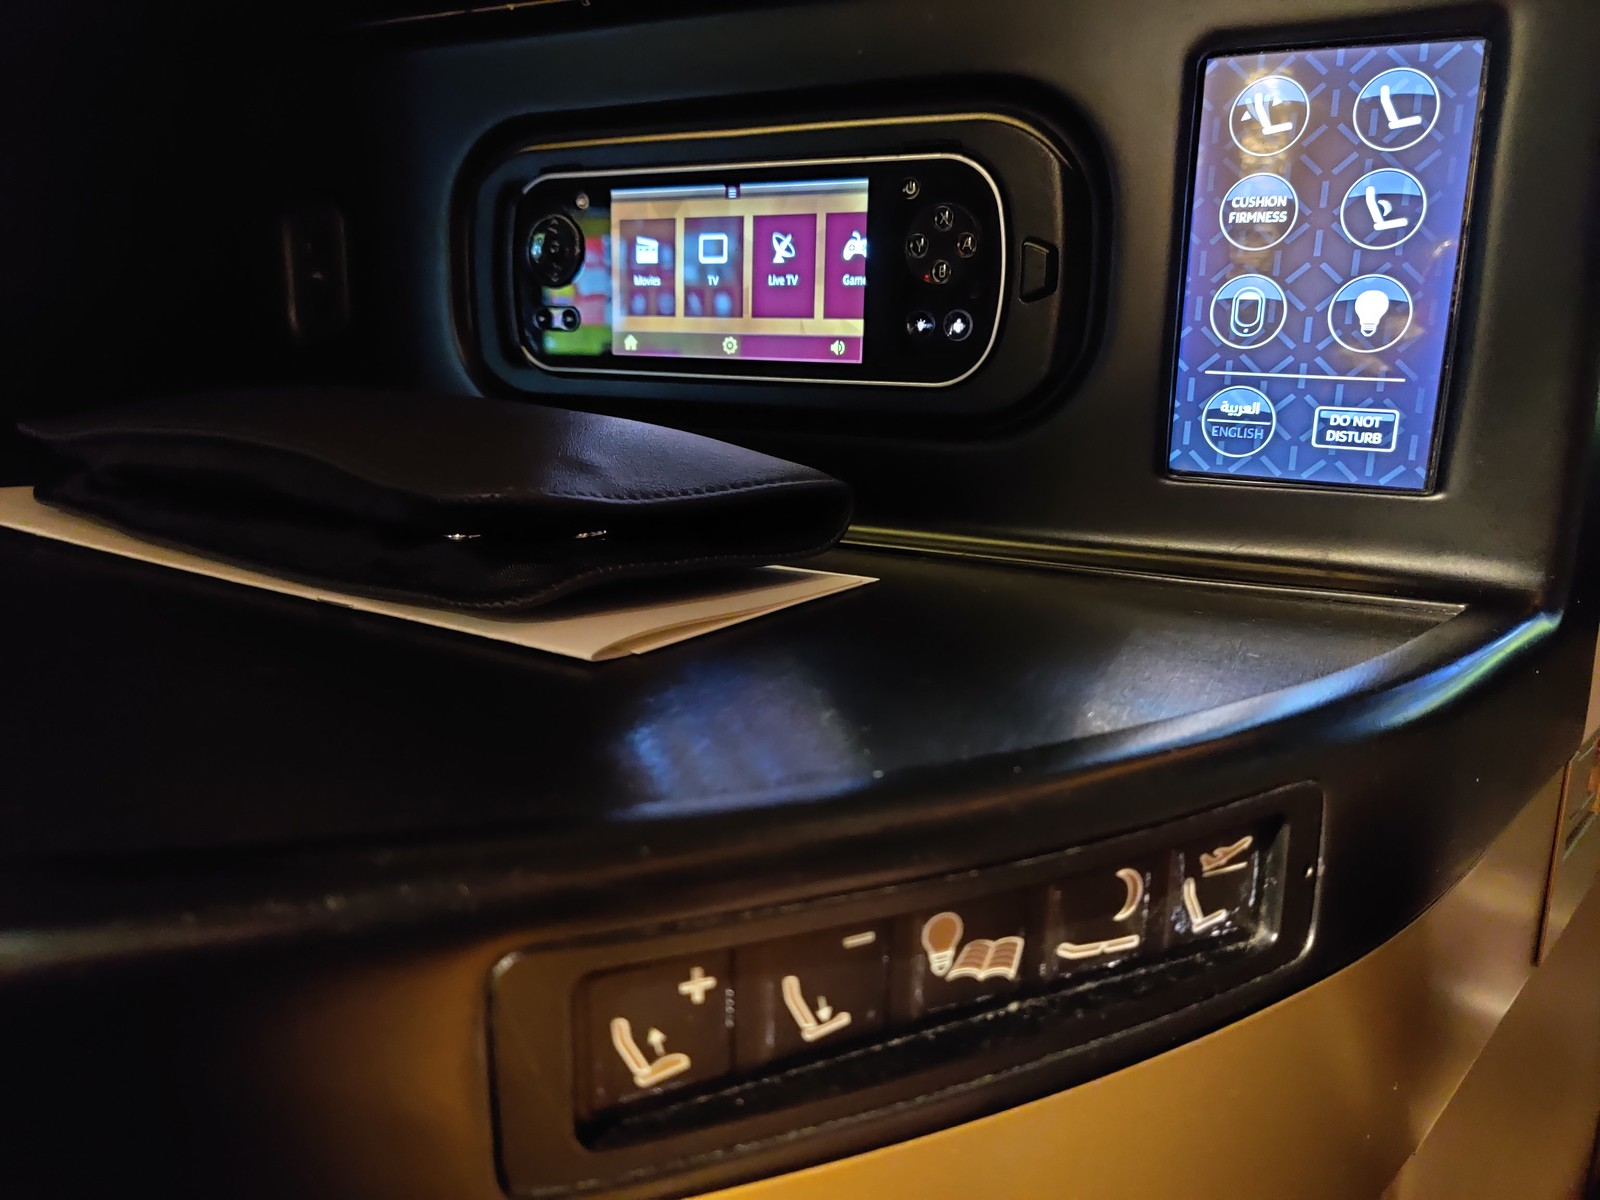 Controls for the seat